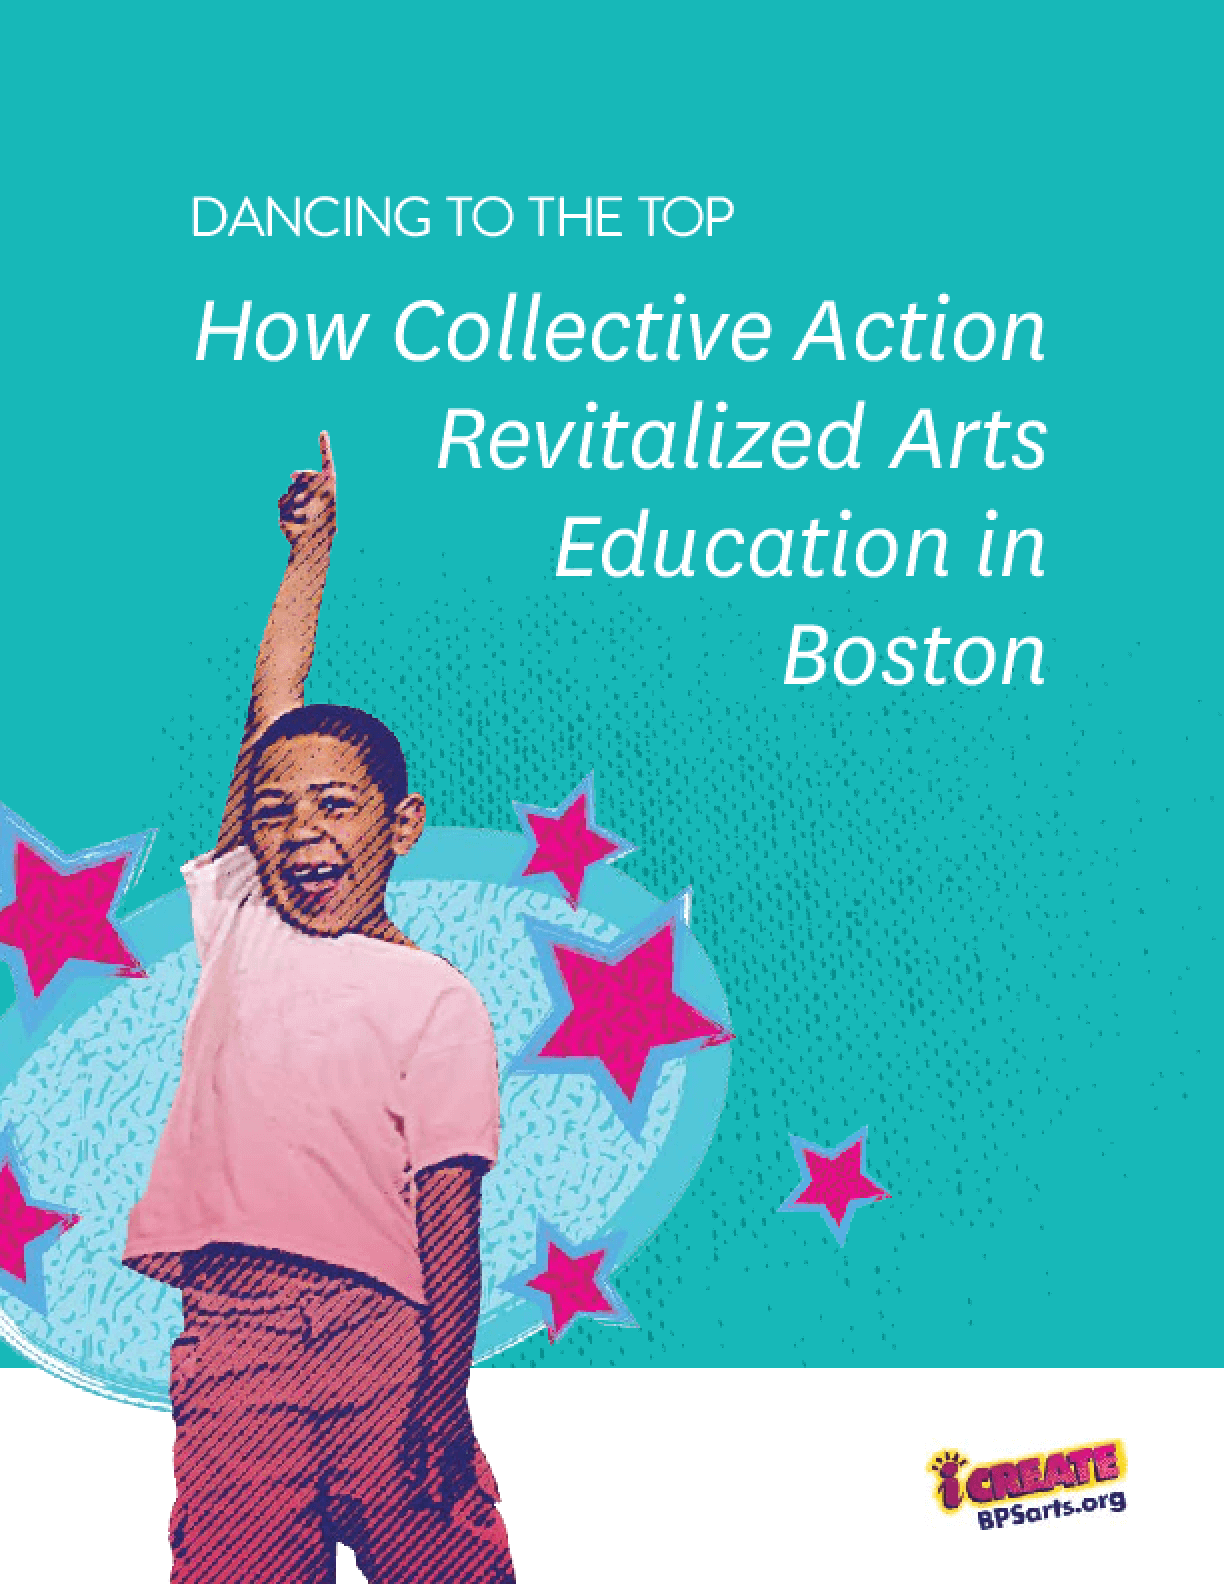 Dancing to the Top: How Collective Action Revitalized Arts Education in Boston